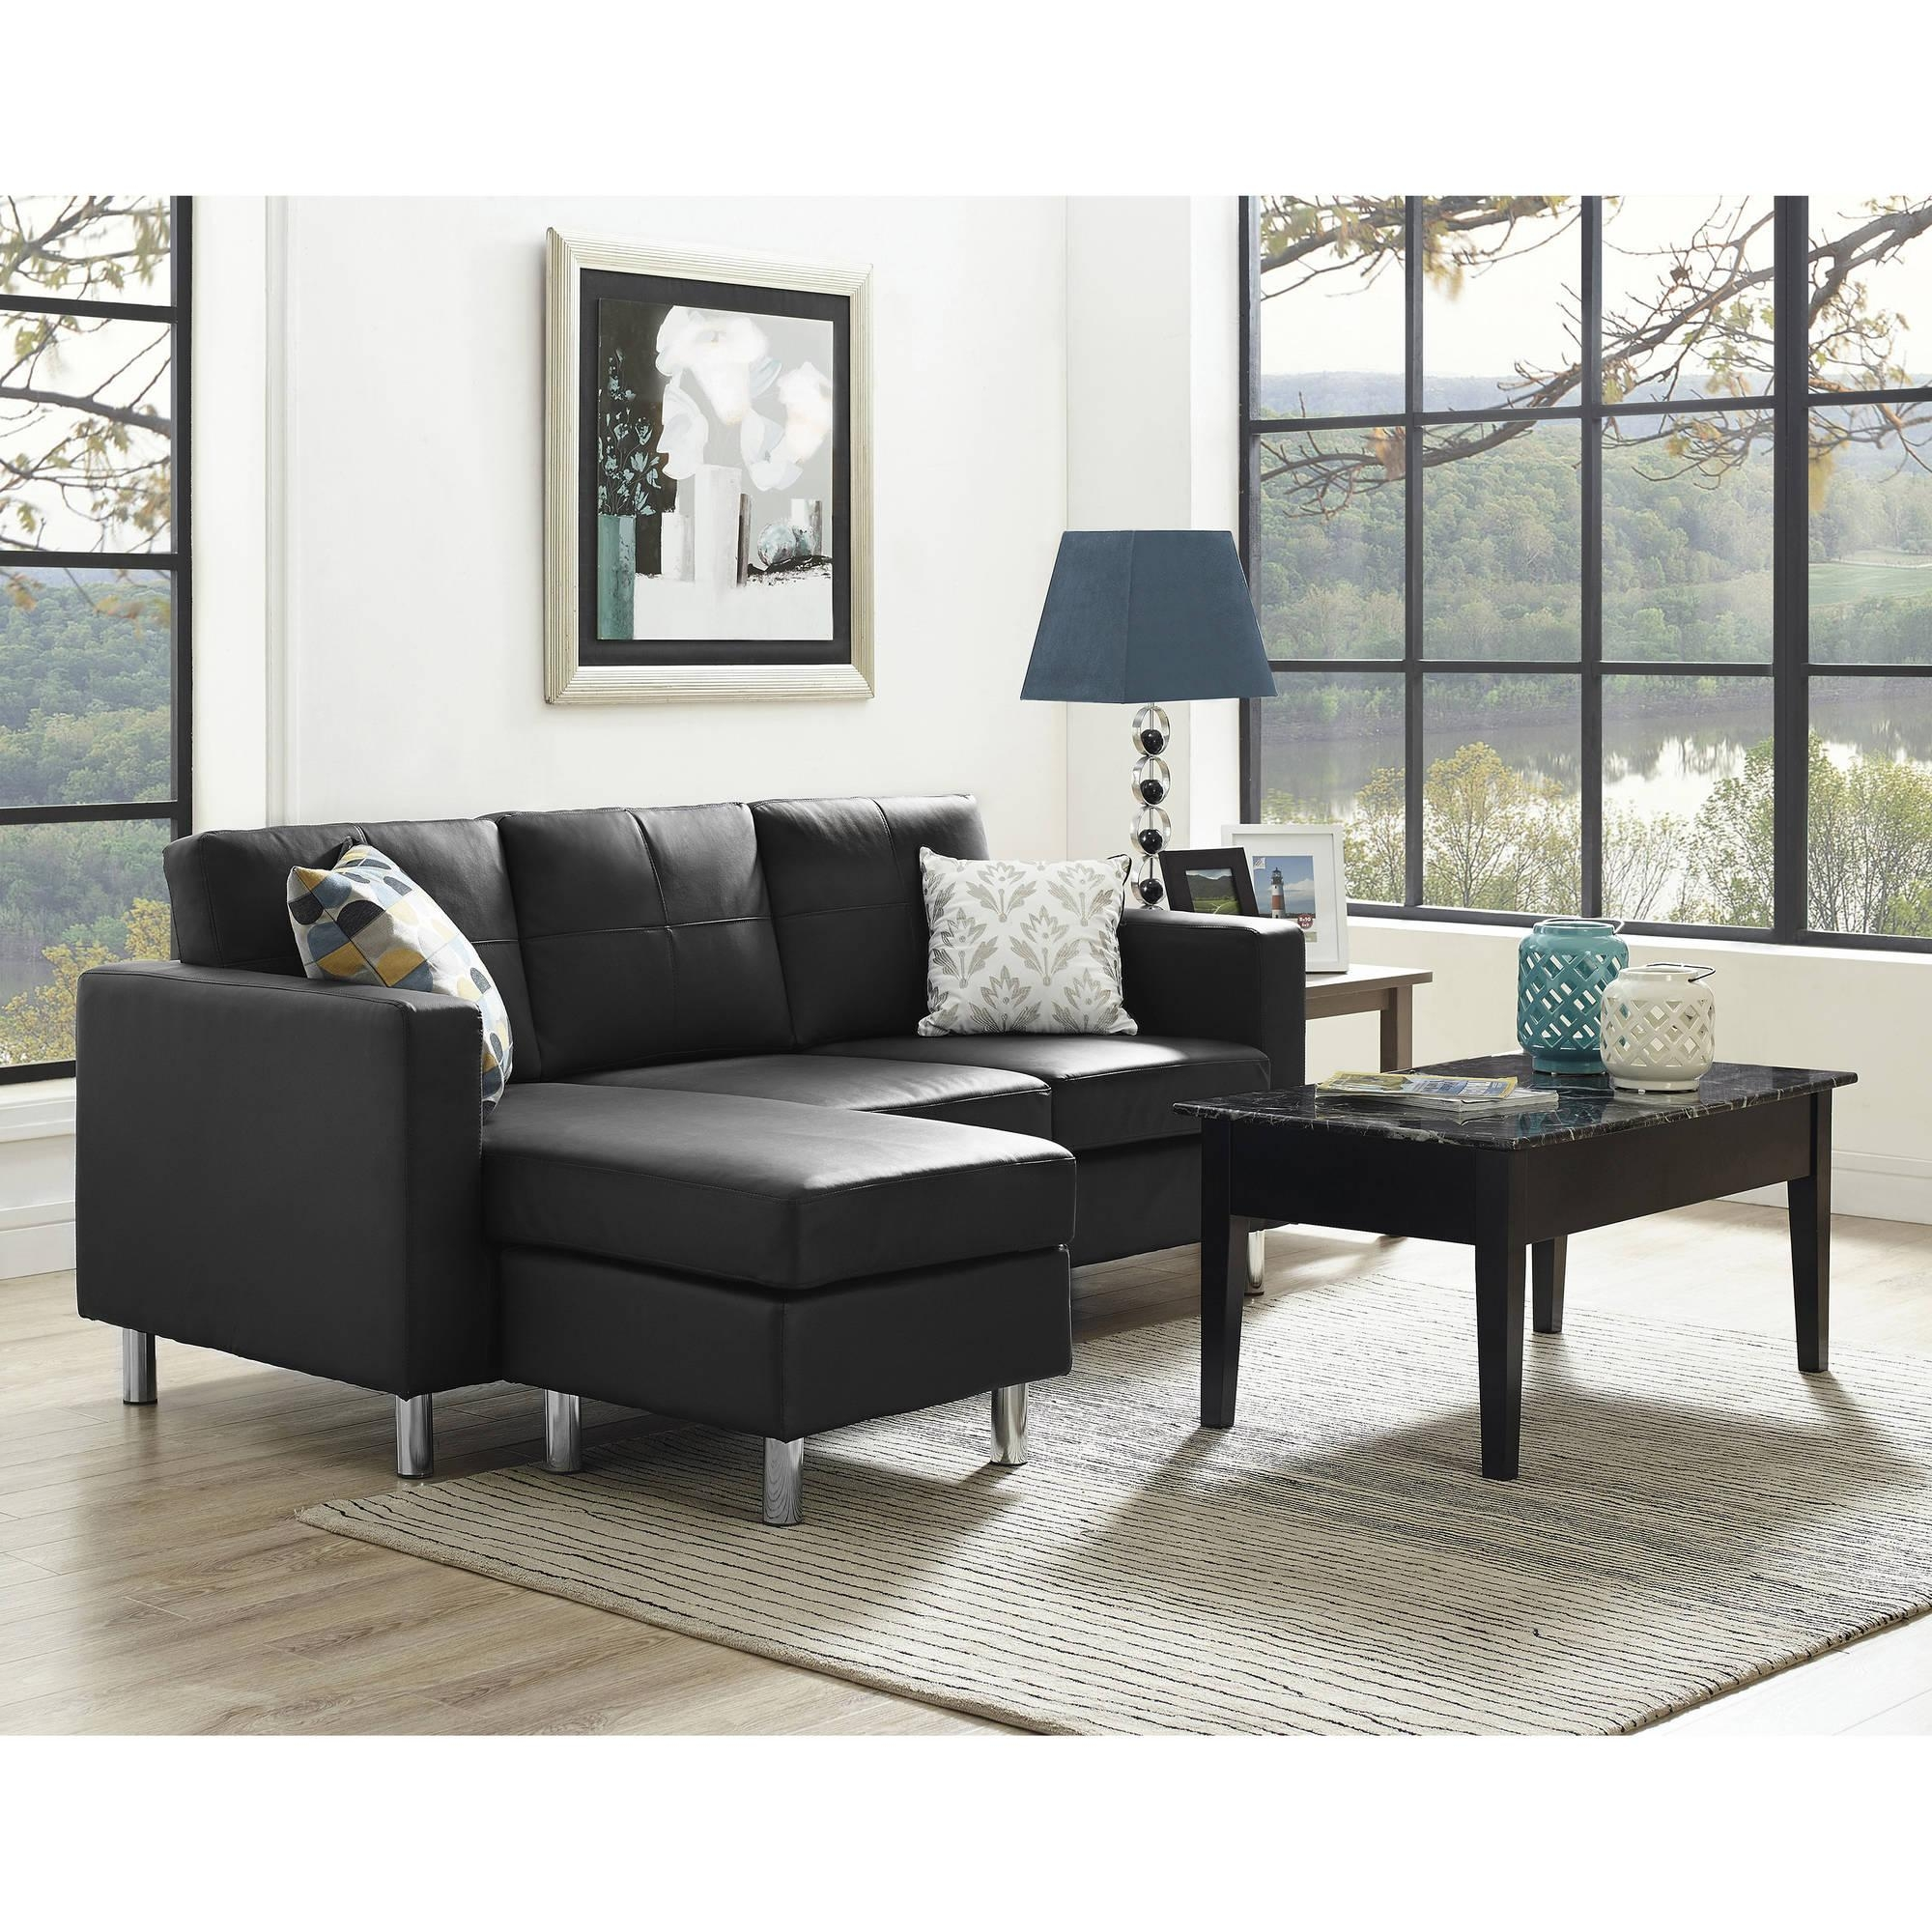 Dorel Living Small Spaces Configurable Sectional Sofa, Multiple With Regard To Apartment Sectional With Chaise (Image 5 of 15)